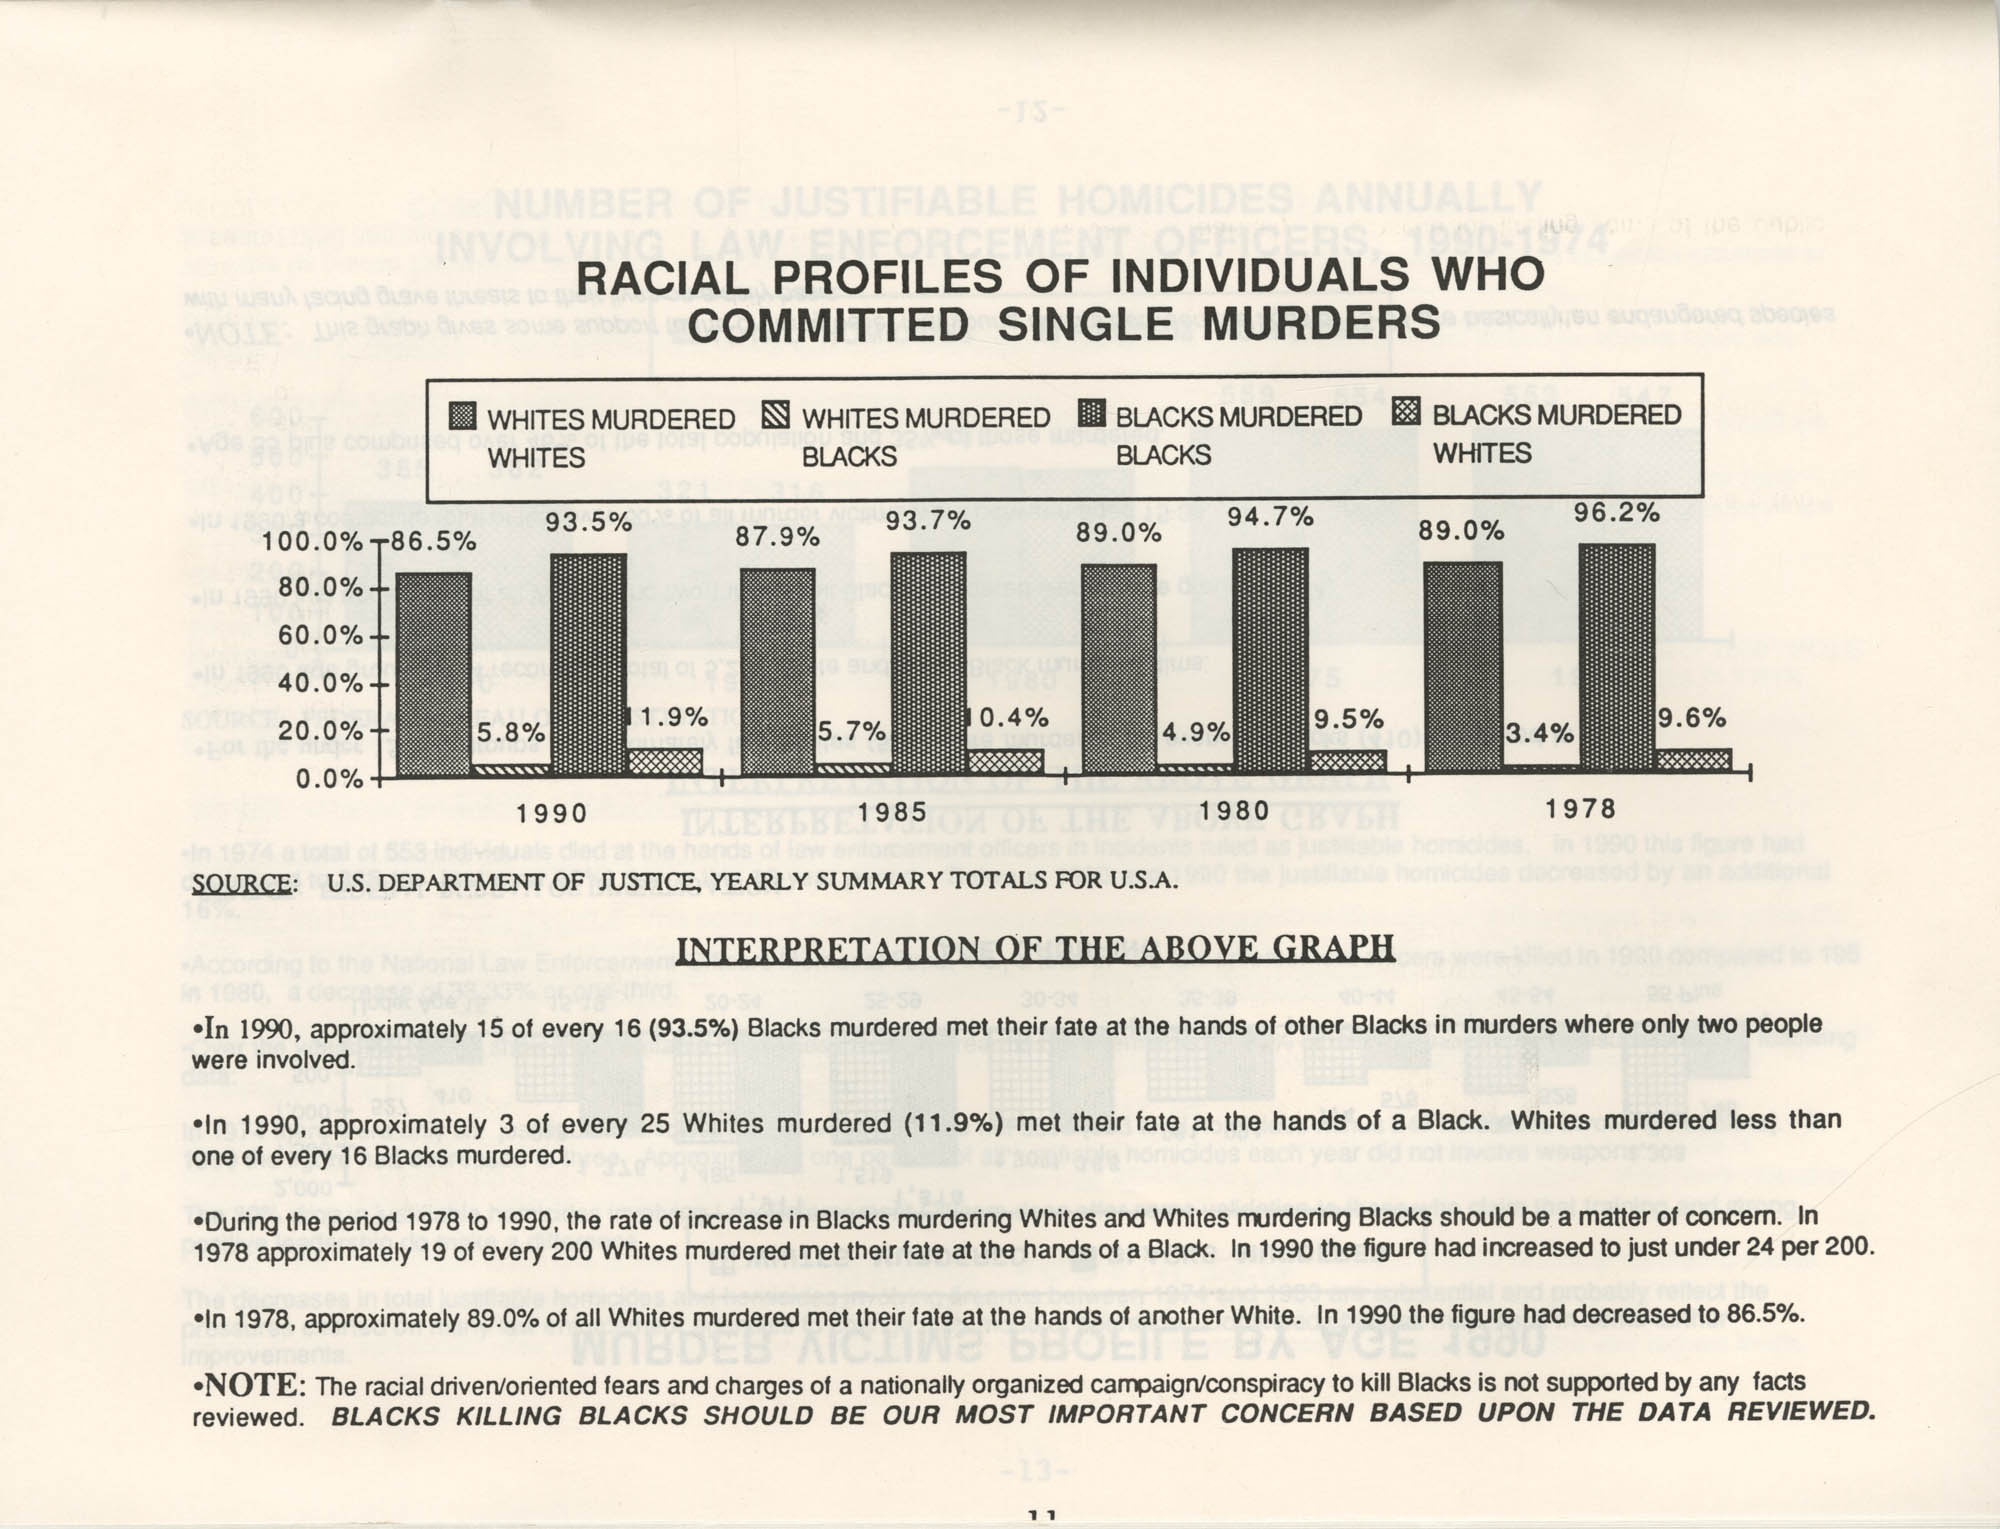 Crime and Criminal Activities in the U.S.A., NAACP National Board of Directors, Page 11